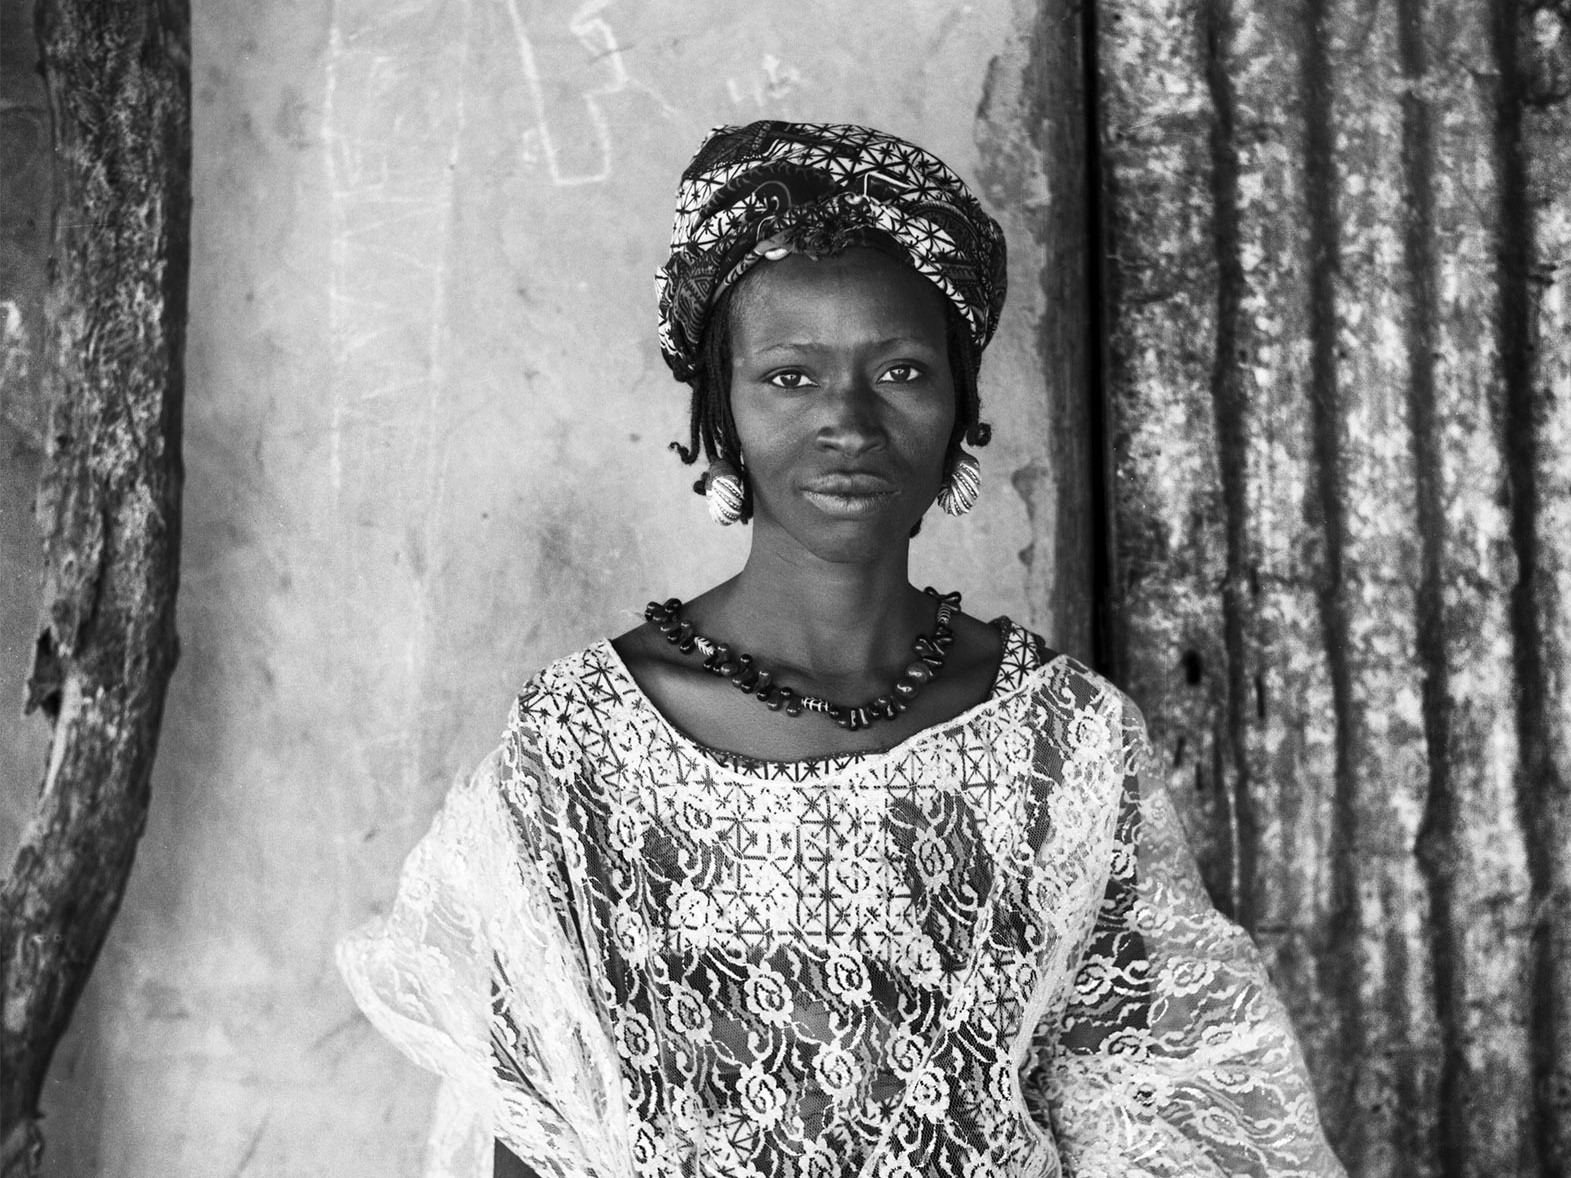 Senagalese photographer Oumar Ly (1943-2016) left a legacy of more than 5,000 photographs of everyday life, many taken in his portrait studio in his rural home town of Podor.